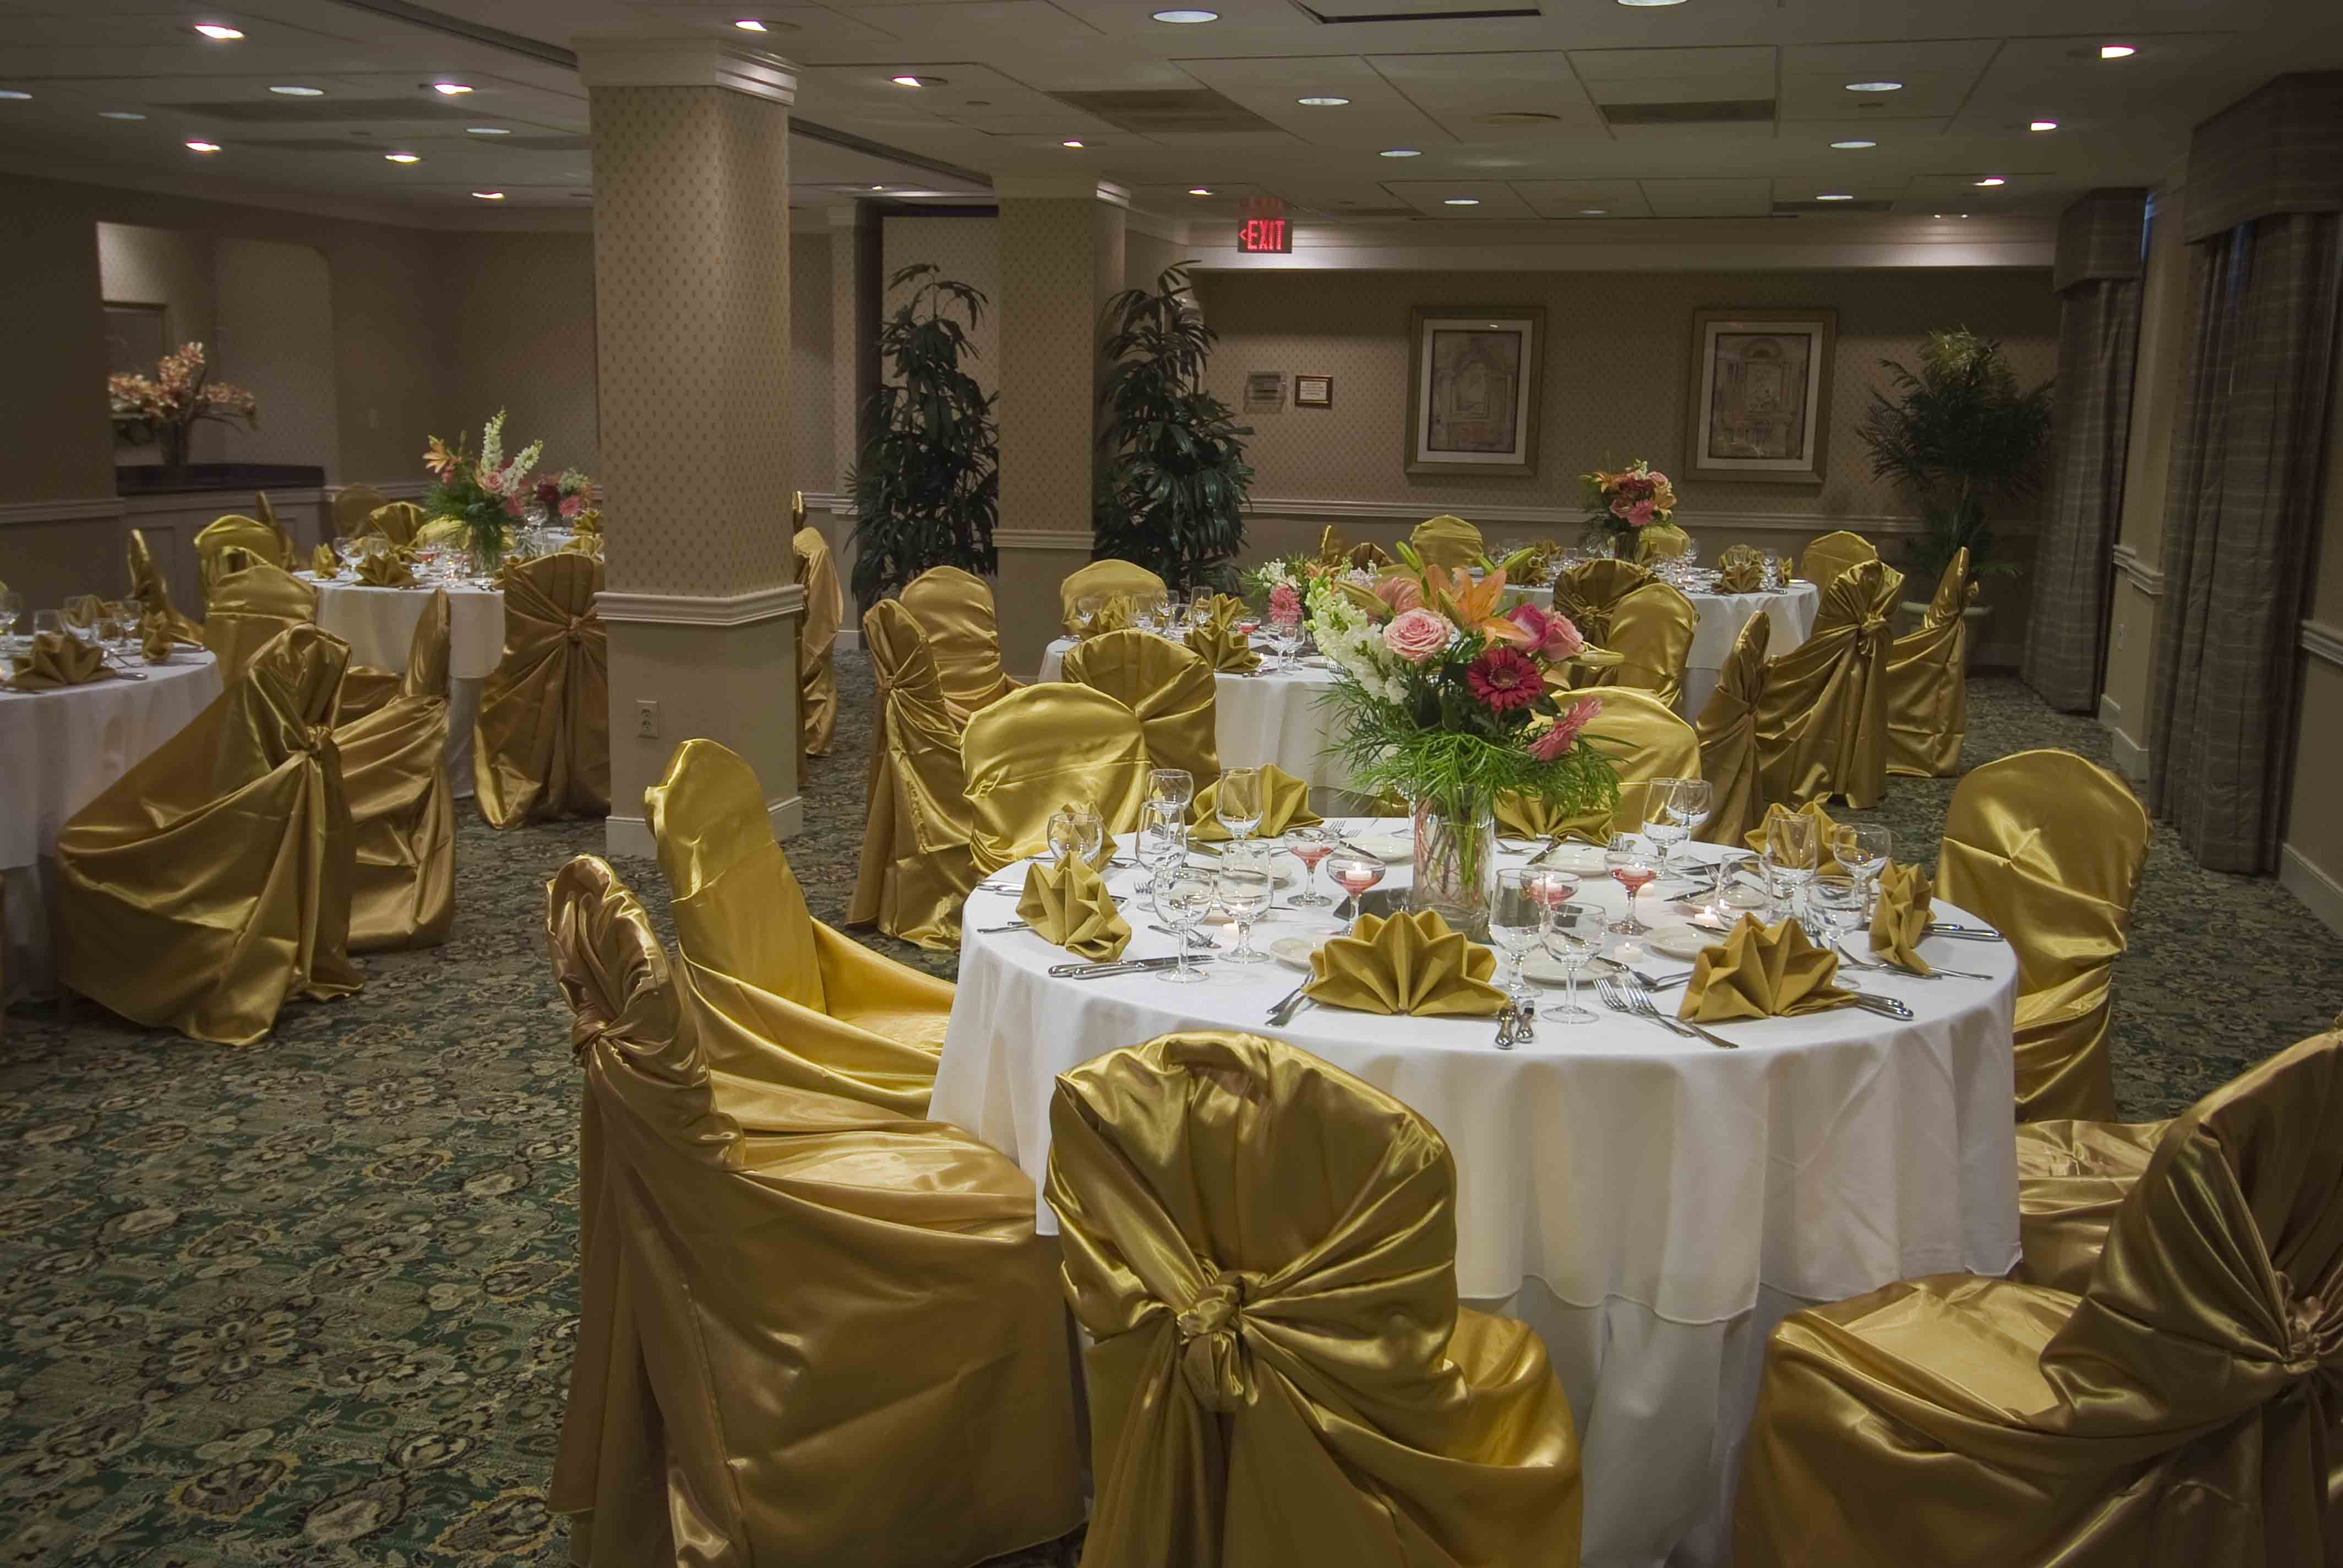 Venues, Hotel, Catering, Banquet, Washington, Dc, Ball, Ballroom, Receptions, Facilities, Rooms, Churchill hotel